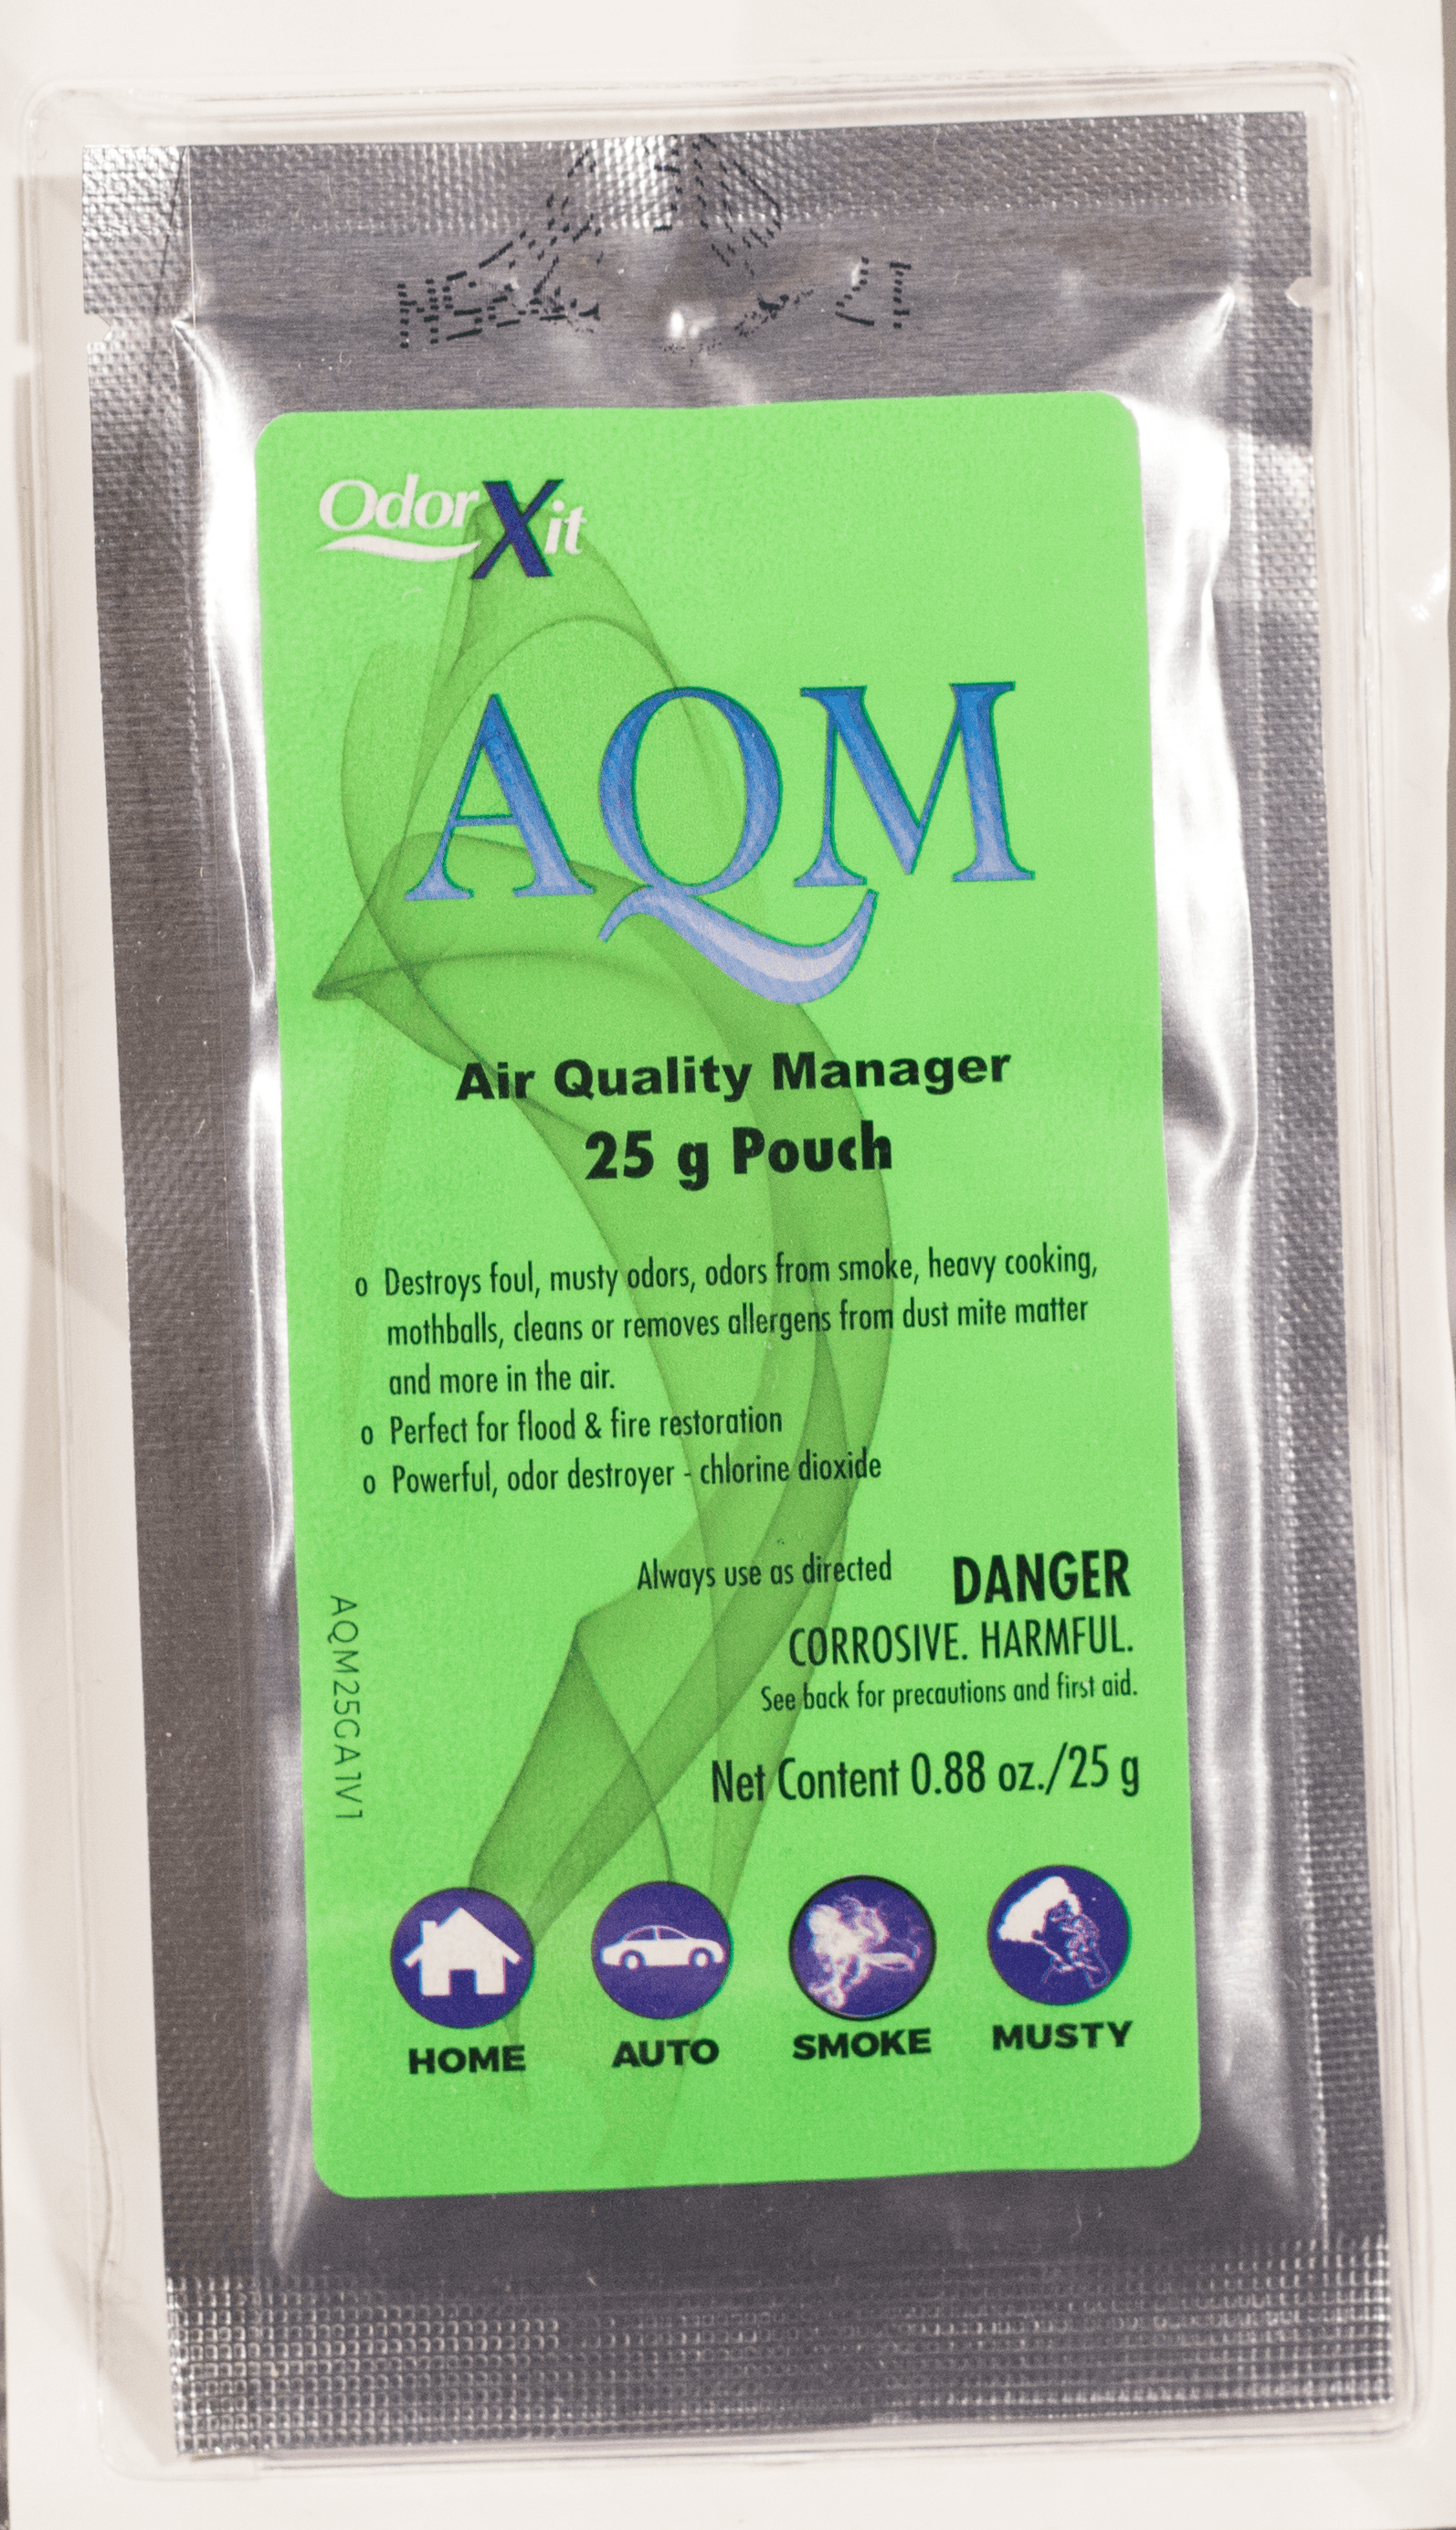 AQM eliminates mold mildew cooking odors